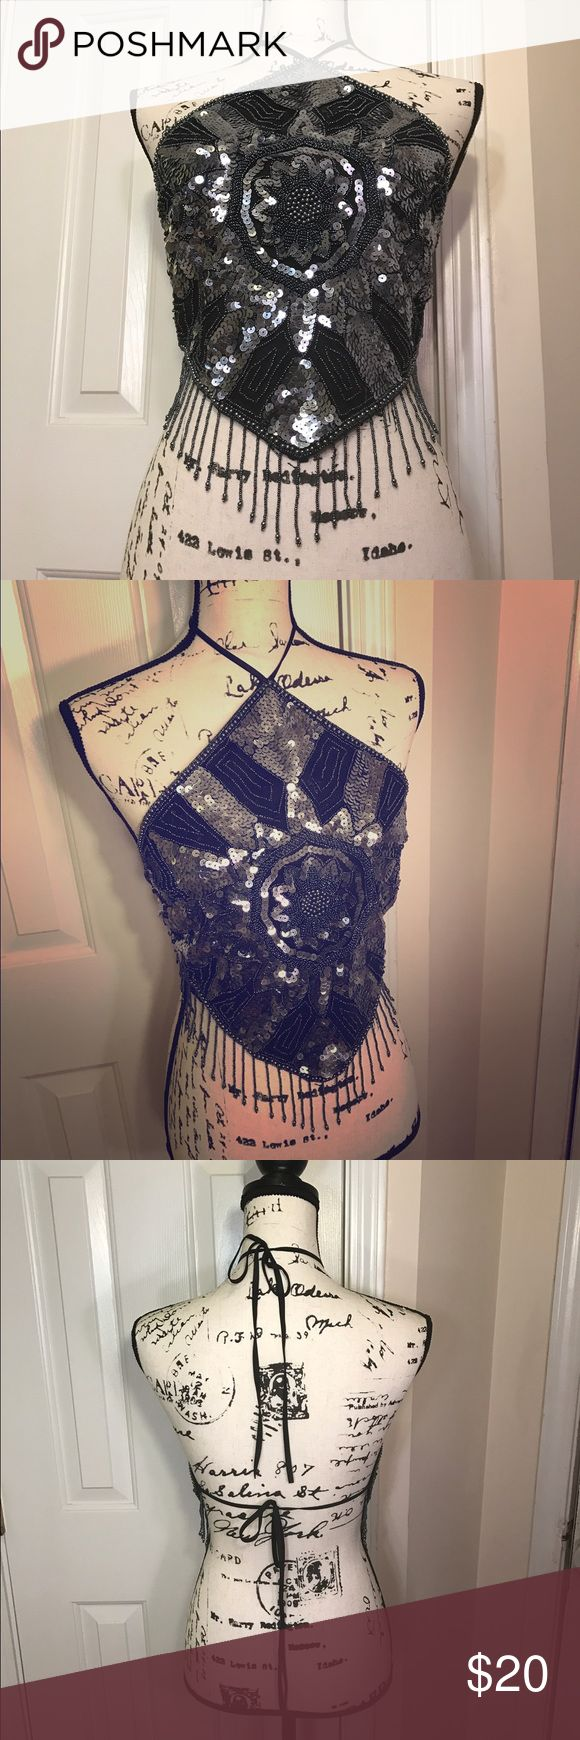 Crazy hot exposed back club/festival top This shirt (can you technically call it a shirt? ... I'm not sure 🤔) is super sexy! You're sure to catch eyes with the bling and the bare skin. Beaded and sequined front in black, grey and silver. Some light will will even bring out pinks and purples. Ties at neck and around back. Beaded tassels aligned the angular bottom hem. Black polyester lining. In PERFECT condition. Worn only one time. Size is small and true to size. This thing is HOT…